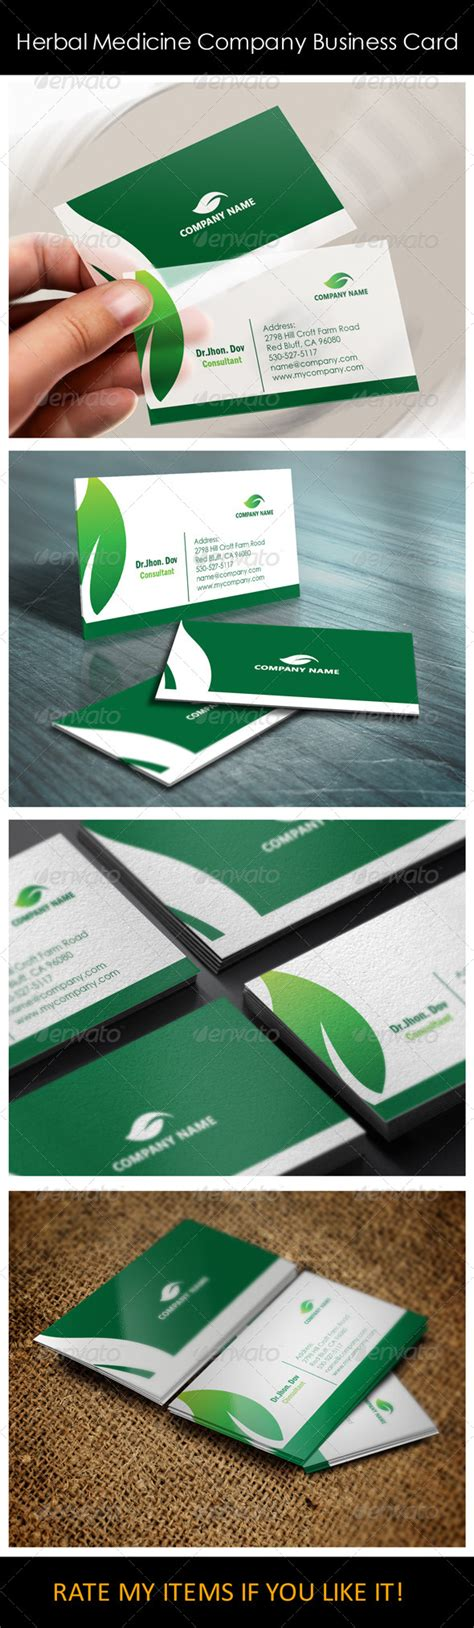 Card Preview by Card Preview Logoby Us